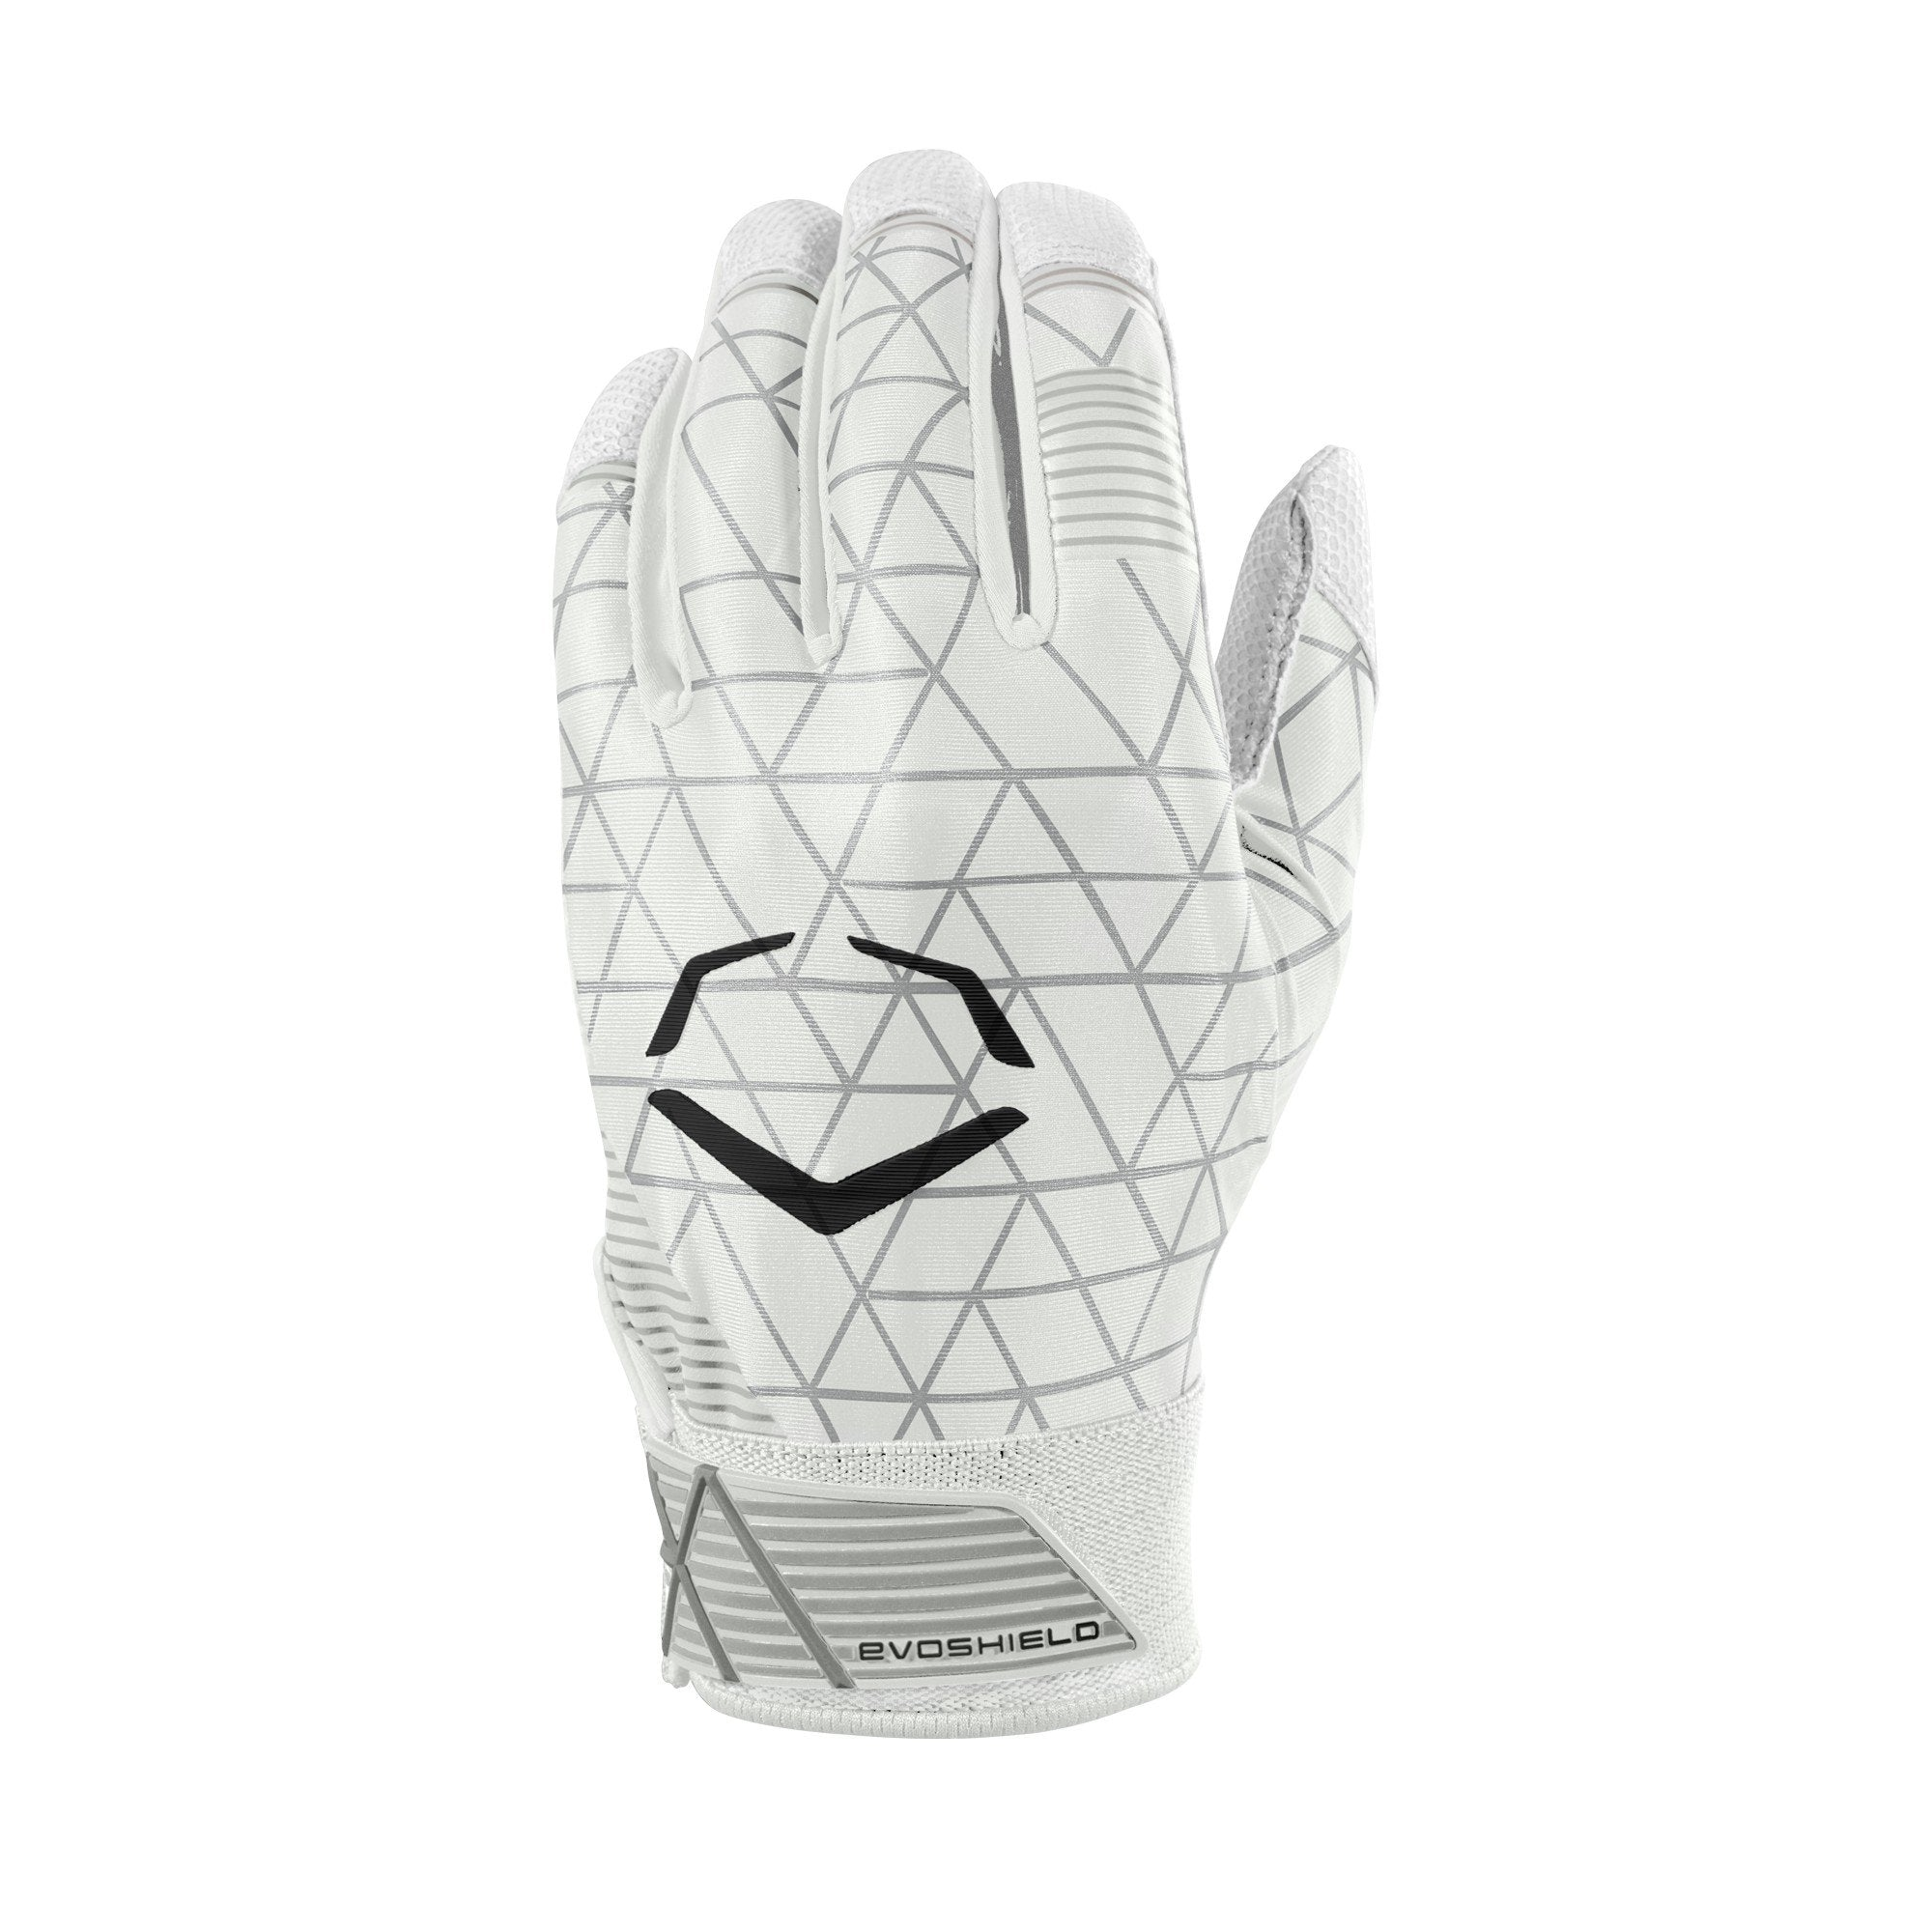 EvoShield EvoCharge Protective Batting Gloves - Youth Small, White - Ctfitnesswear